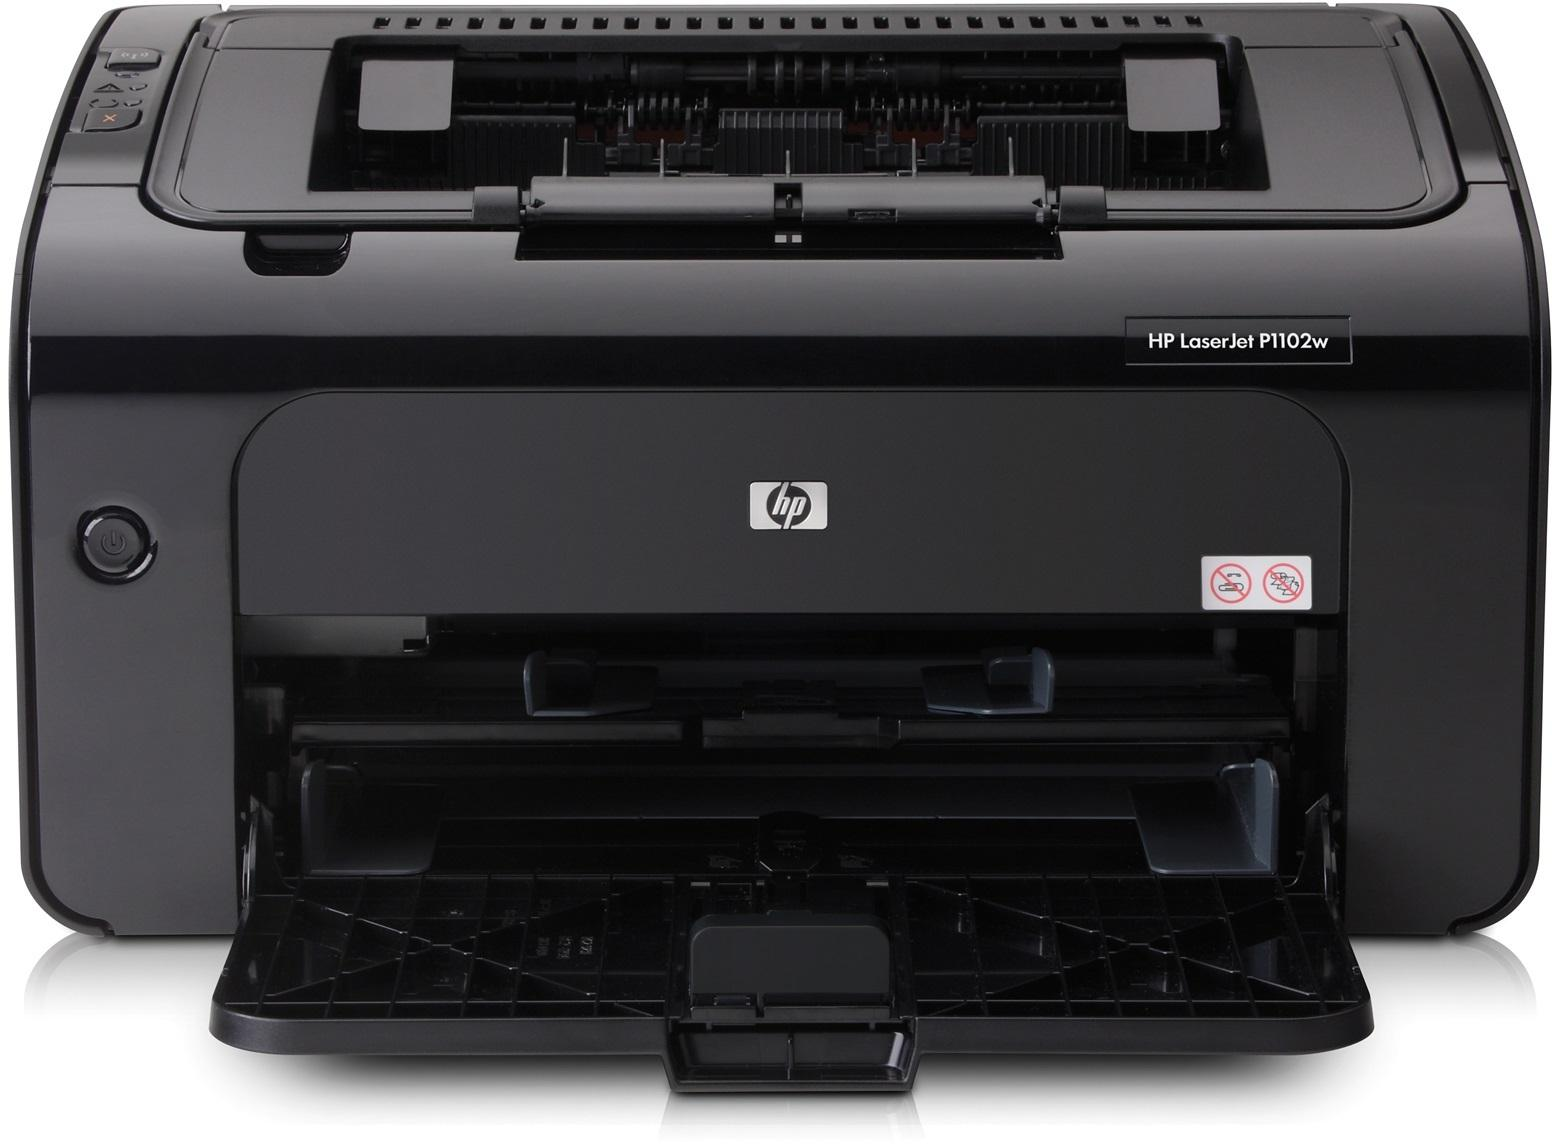 HP® LaserJet Pro (P1102W) Wireless Monochrome Laser Printer